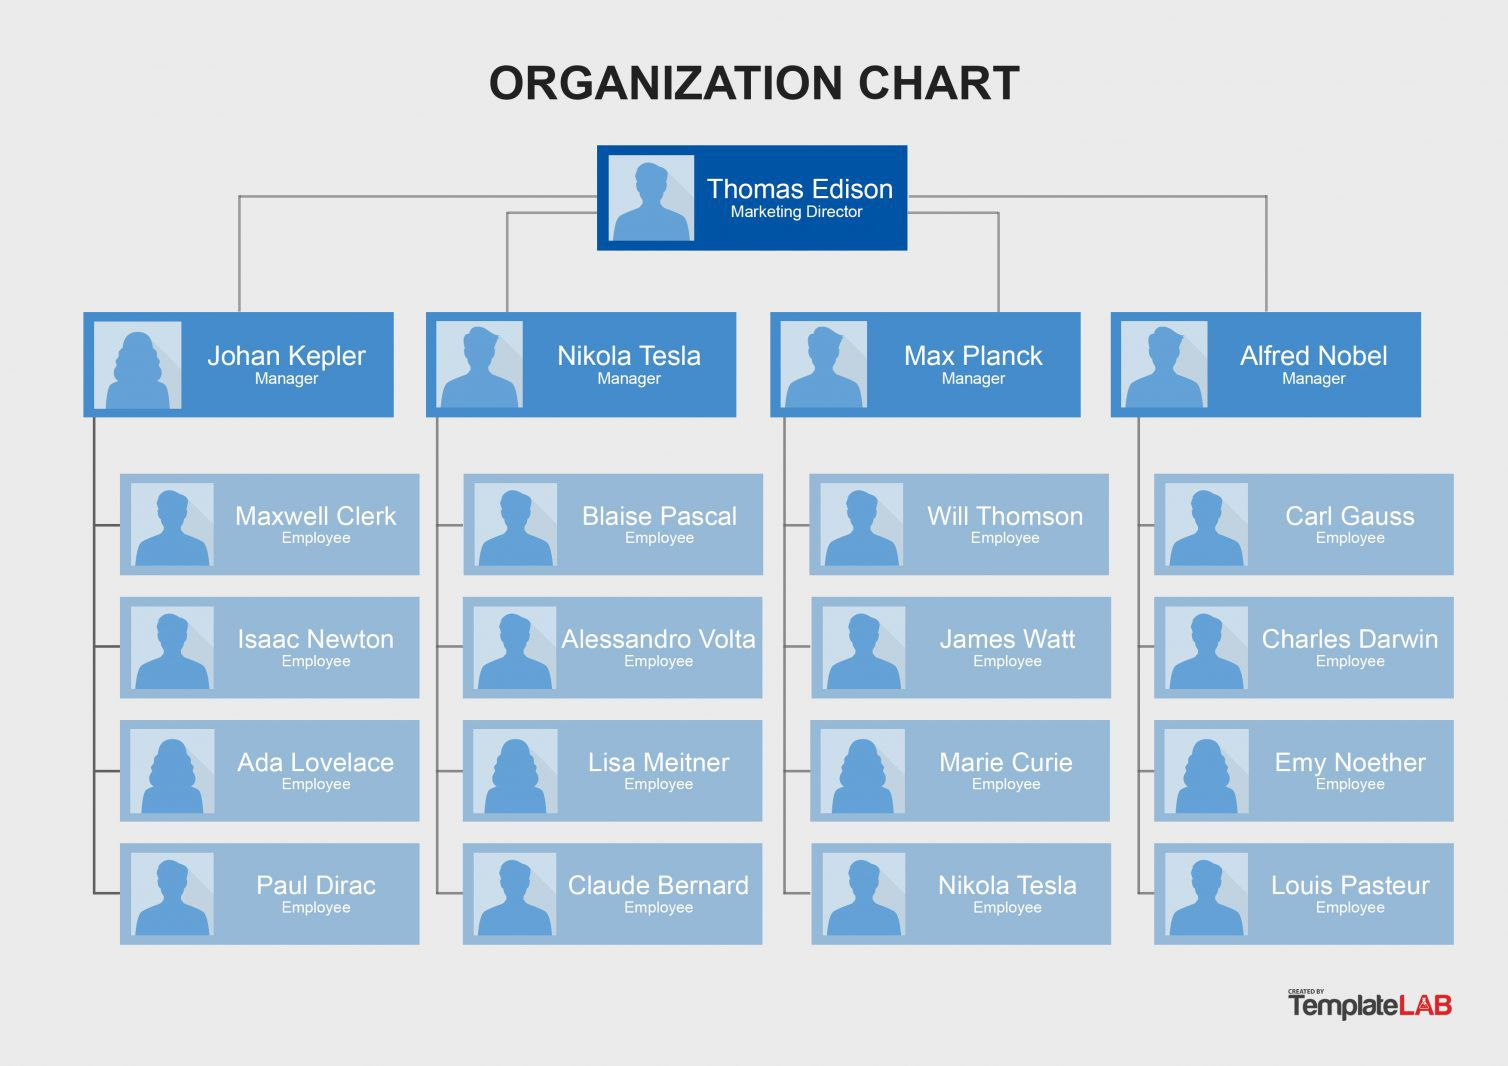 006 Impressive Organizational Chart Template Word Sample  2010 2007 Free DownloadFull